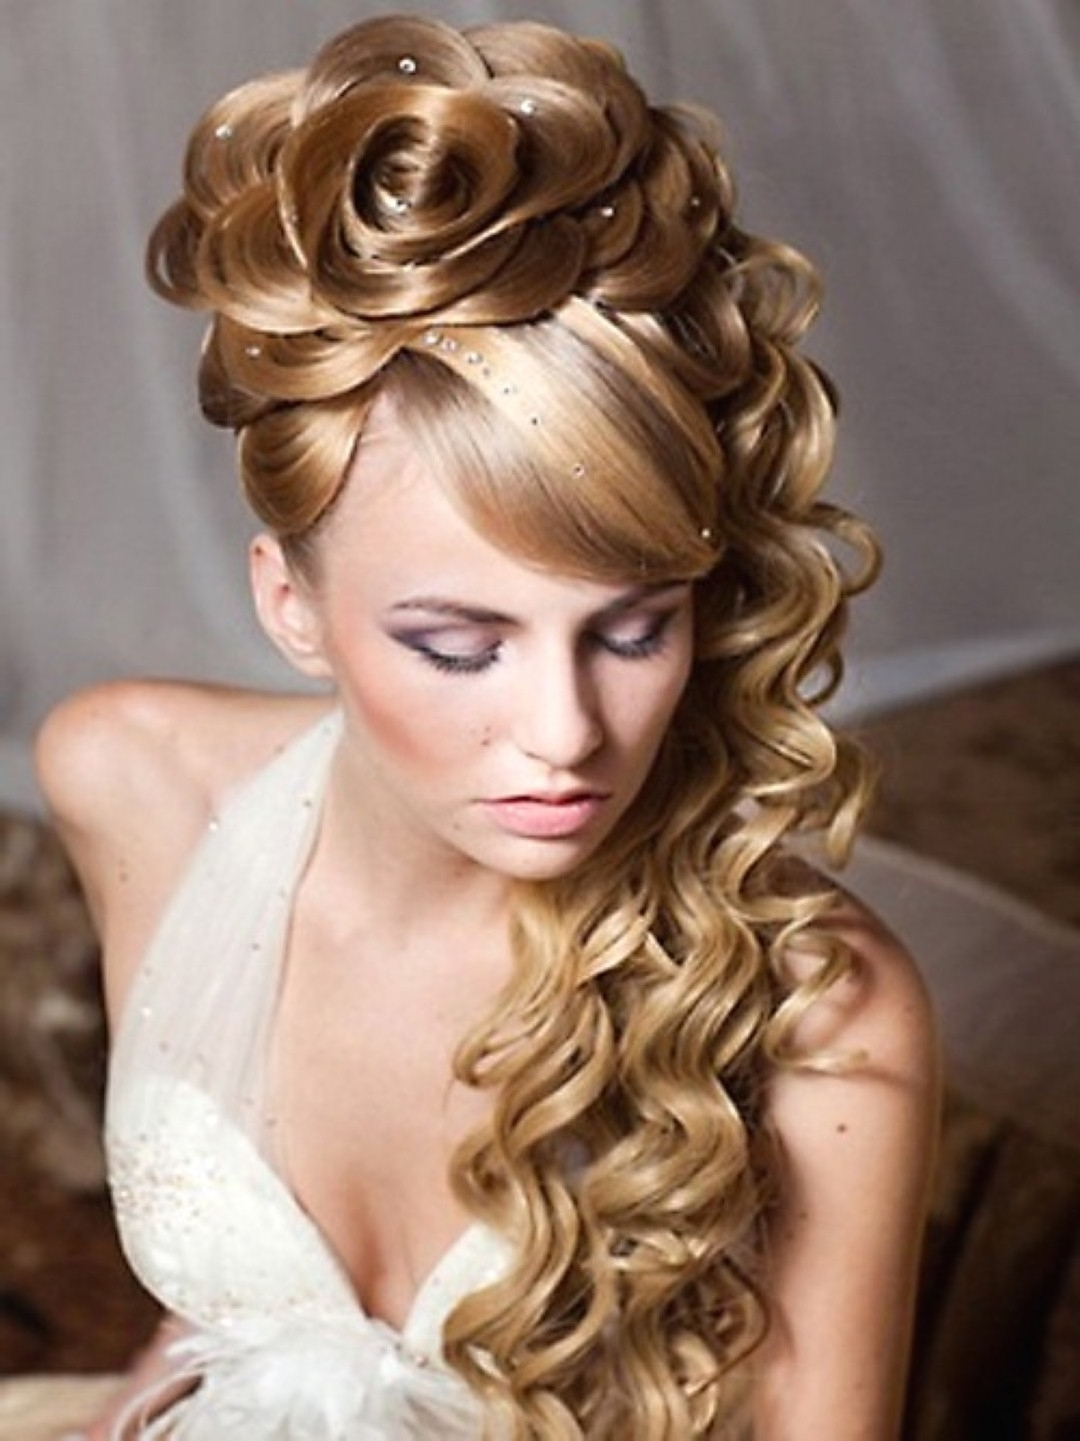 Popular Wedding Hairstyles For Long Hair With Side Swept With Side Swept Updo Wedding Hairstyles Hair Curly Bridal Curls With Veil (View 13 of 15)